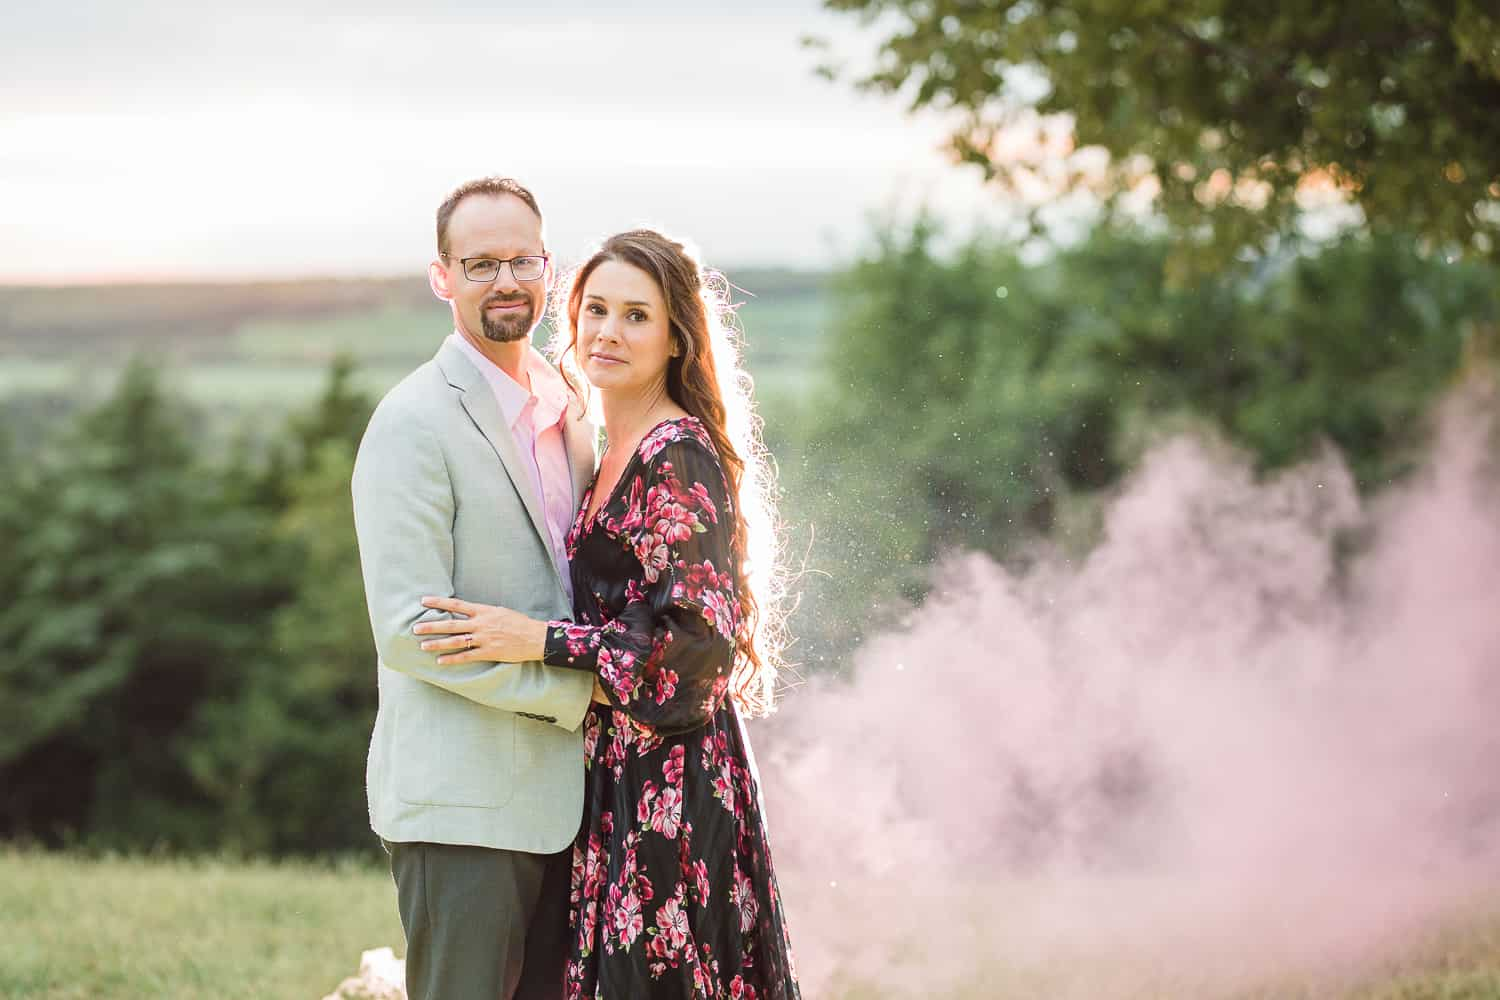 Smoke bomb engagement session in Lawrence